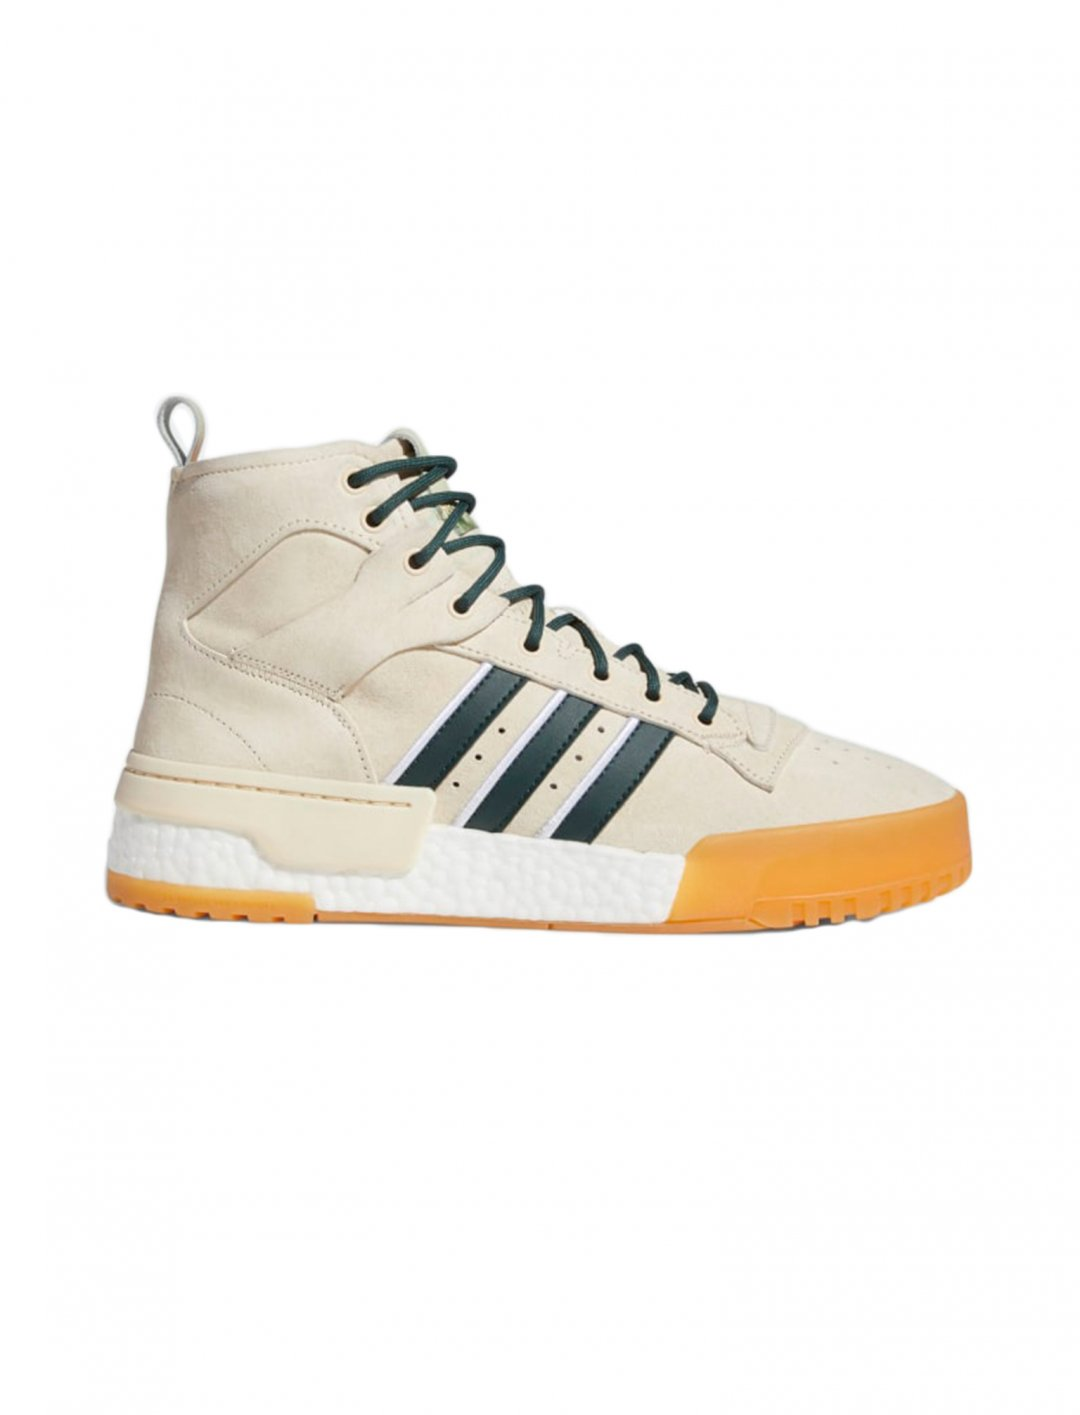 "Rivalry Rm Shoes {""id"":12,""product_section_id"":1,""name"":""Shoes"",""order"":12} Adidas x Eric Manuel"